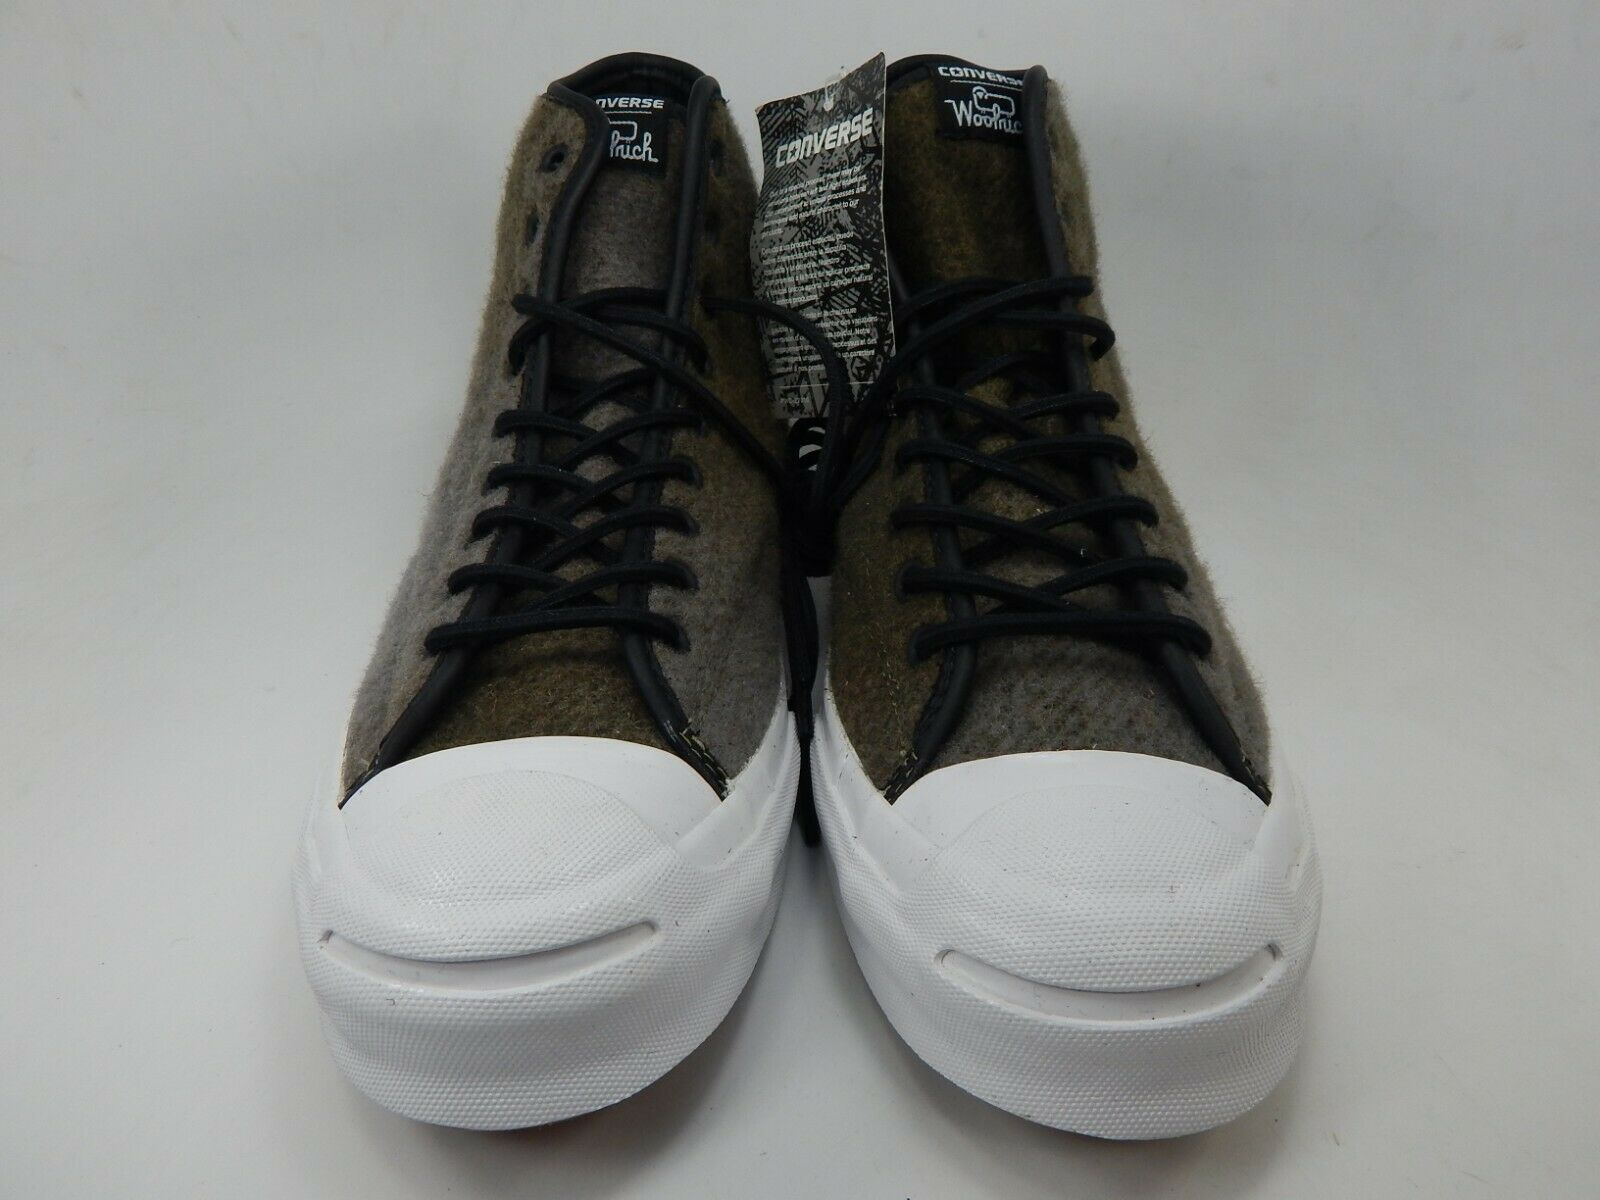 Converse Jack Purcell Woolrich Firma Hi and 50 similar items